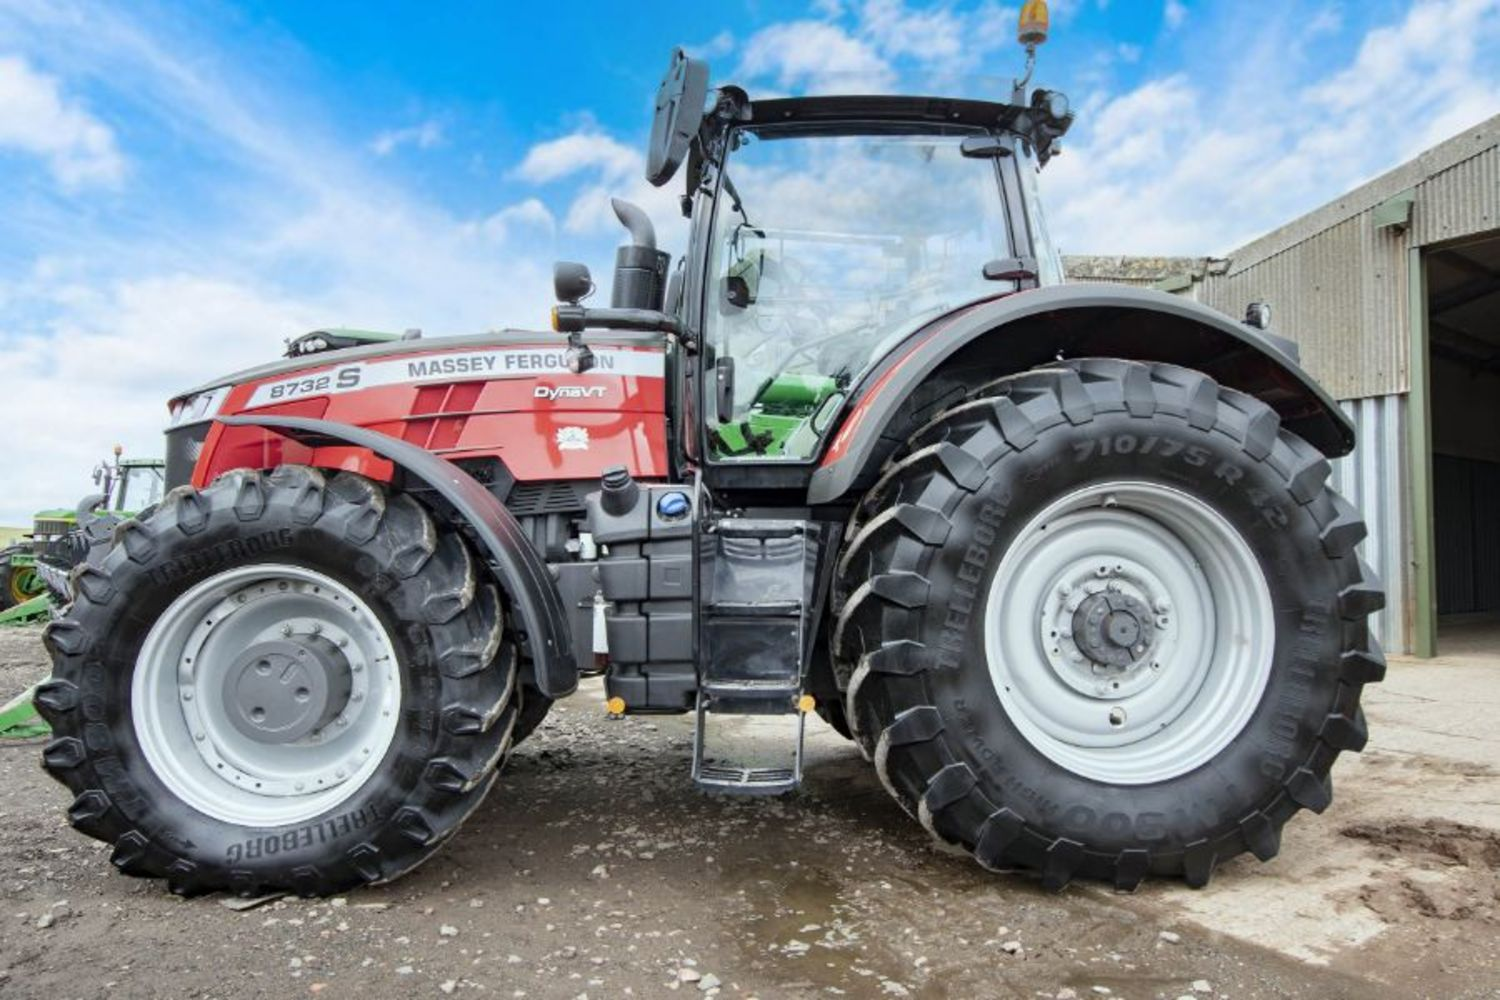 Sale of Tractors & Cultivation Equipment Following Sale of Farm